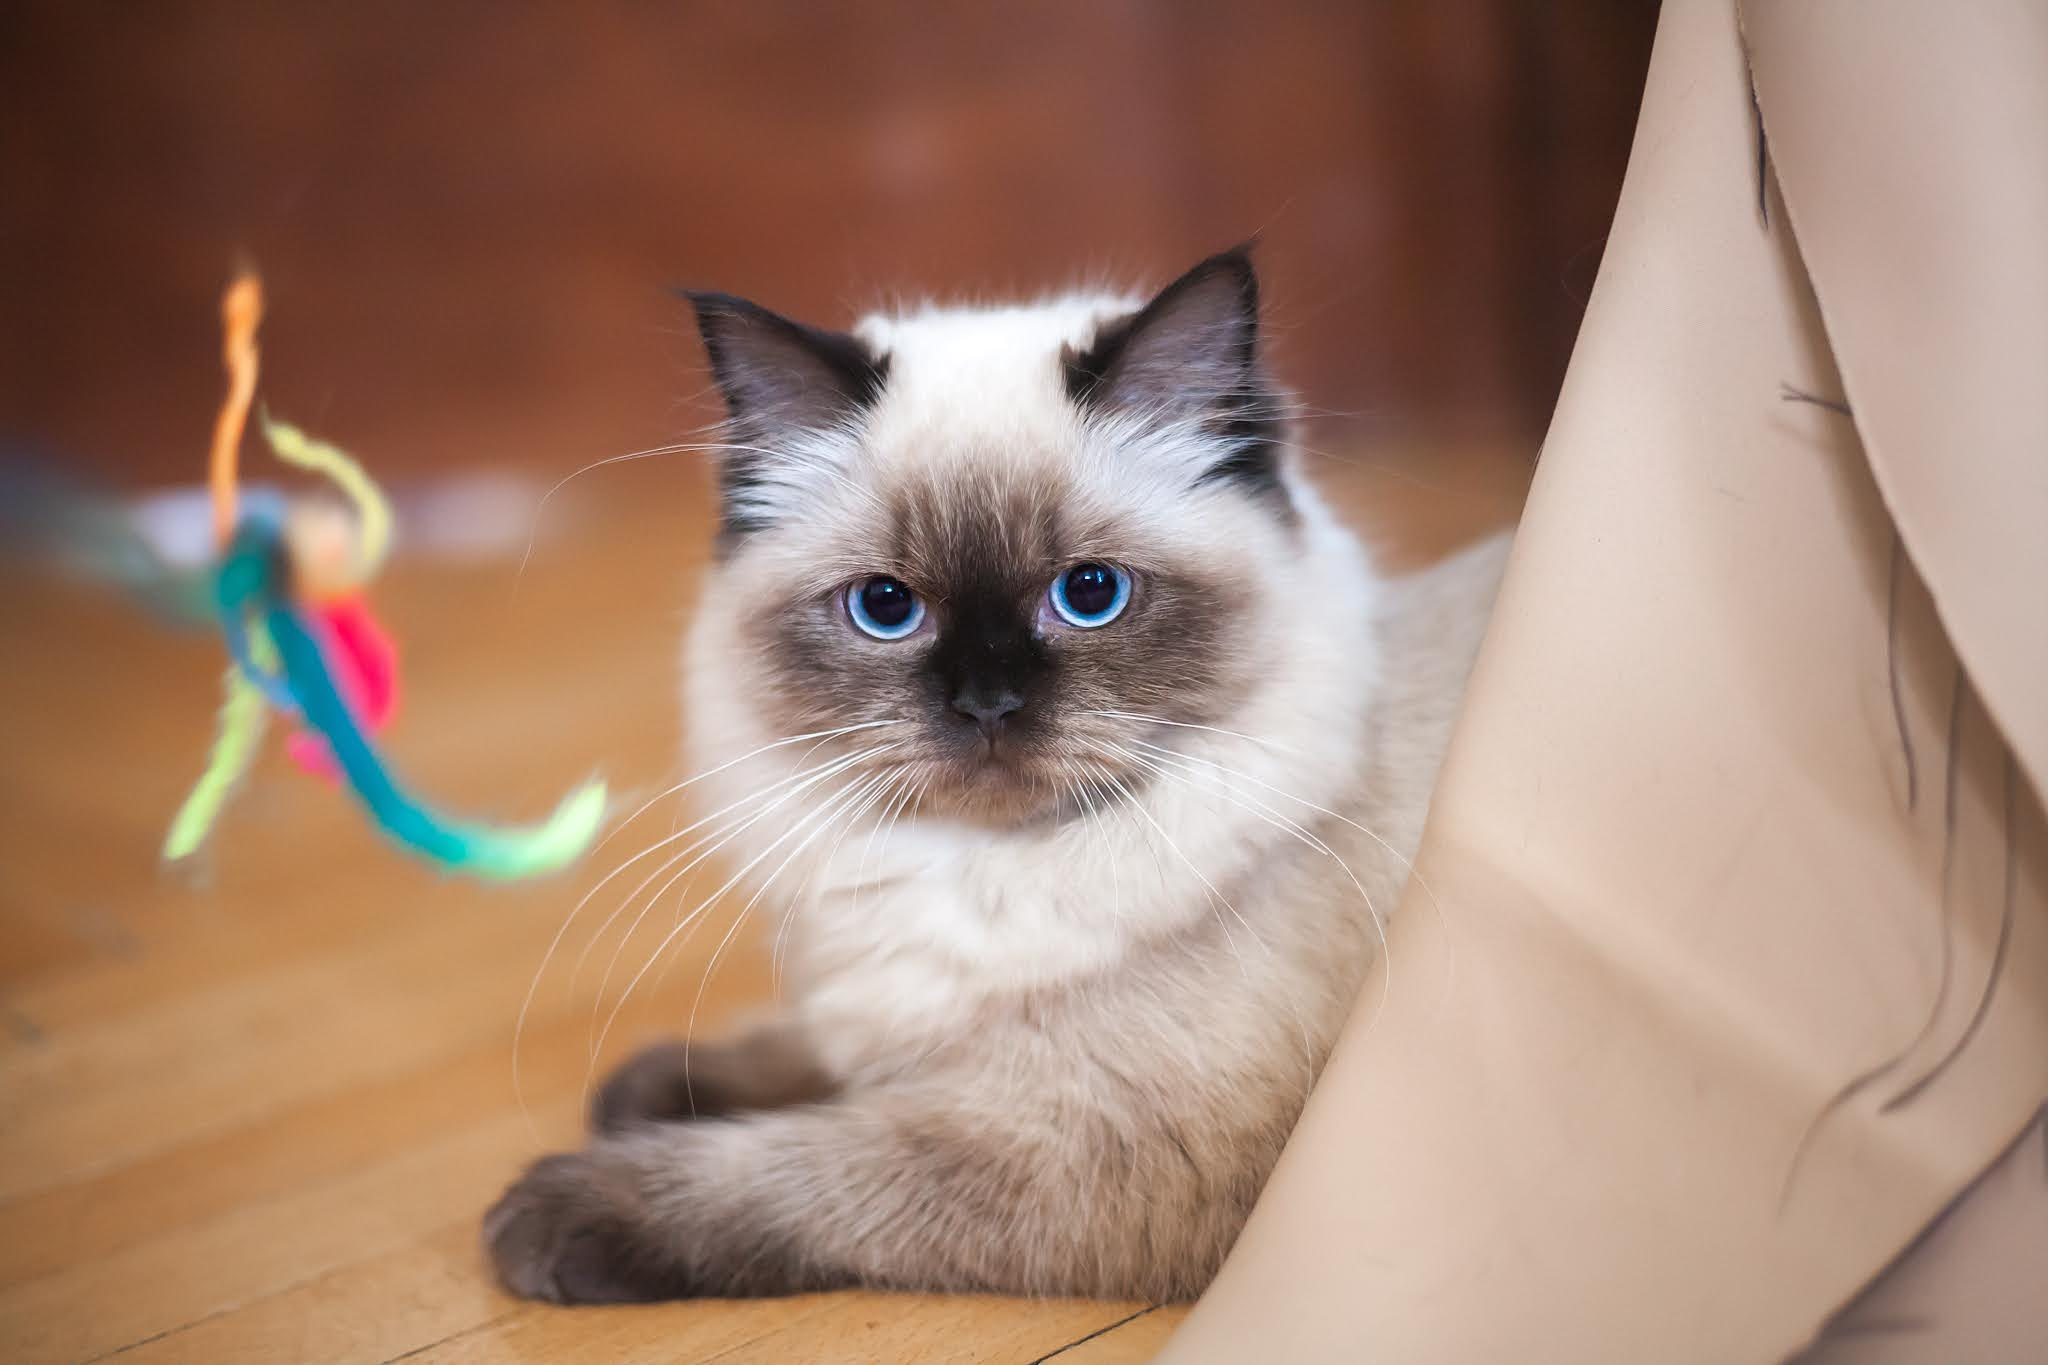 Pets - CAT Communication, Behavior and Intelligence And Their Interaction With Humans